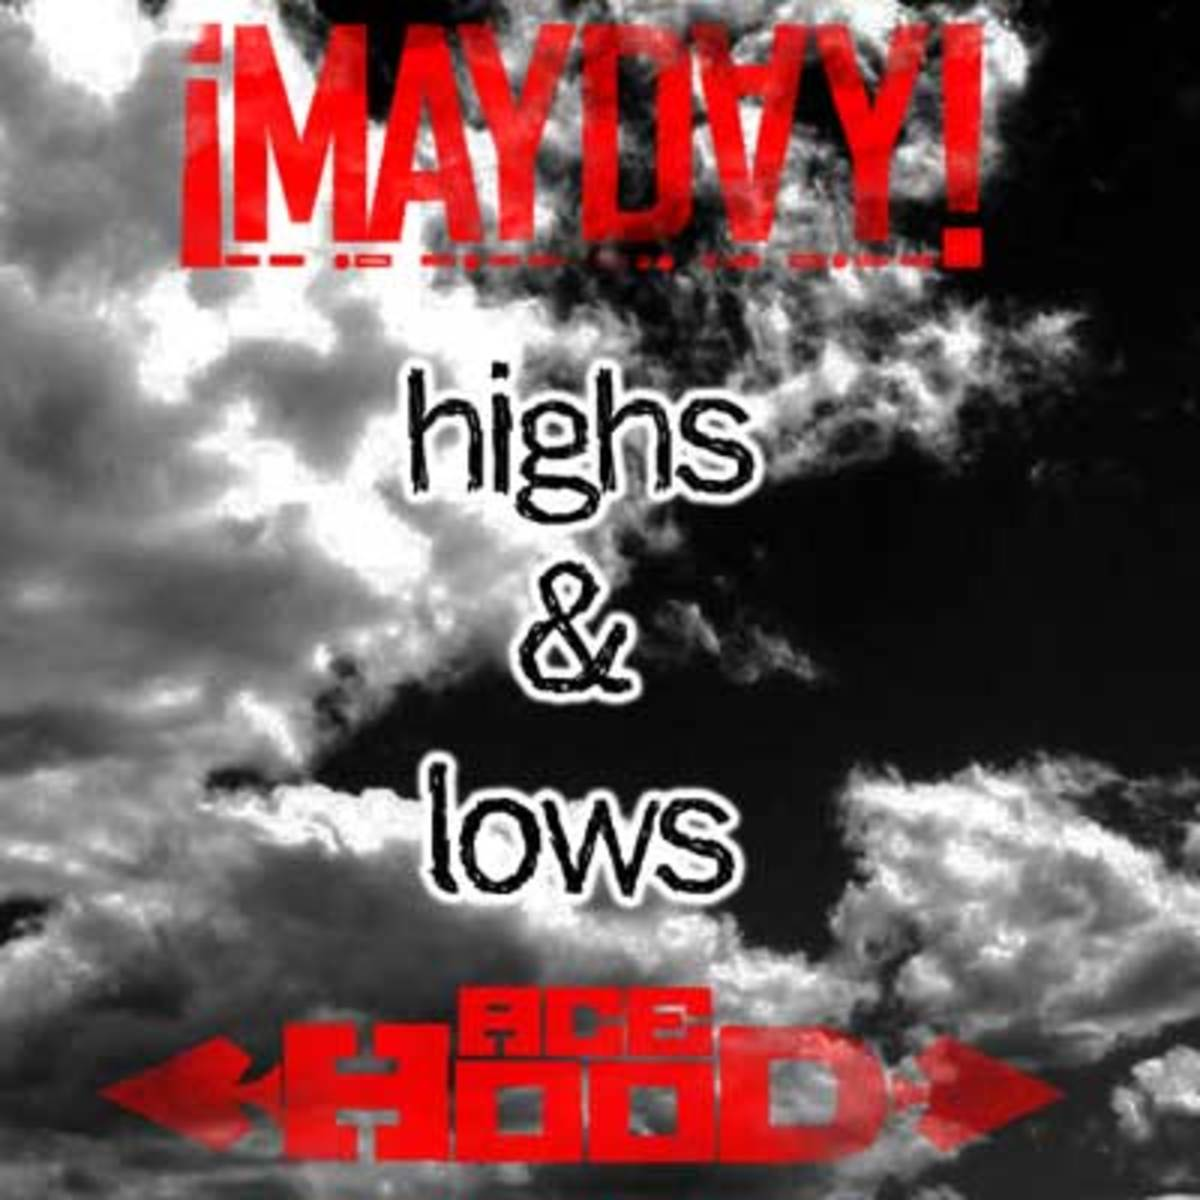 mayday-highsandlows.jpg